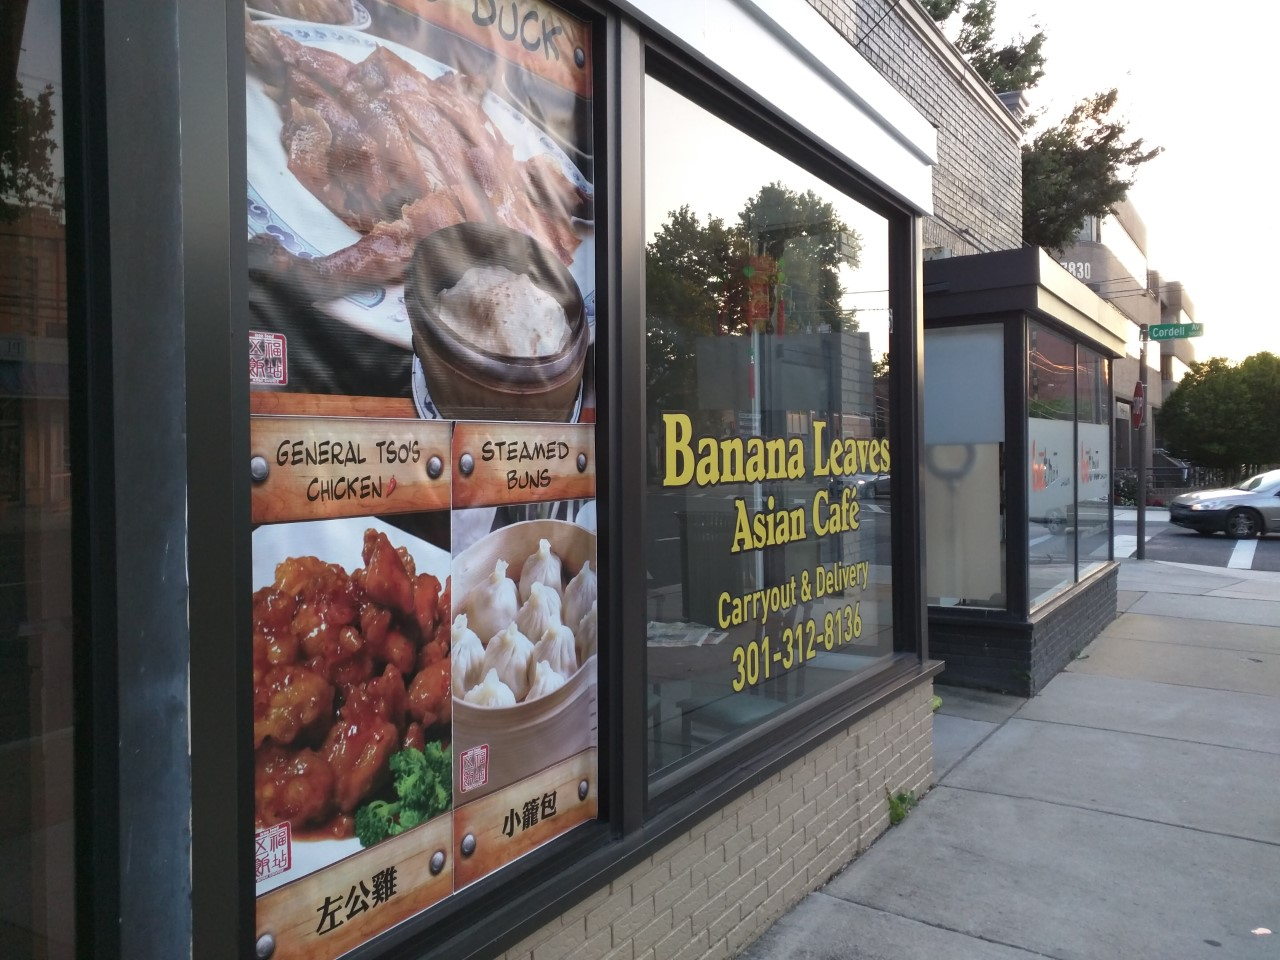 robert dyer @ bethesda row: banana leaves asian cafe opening in